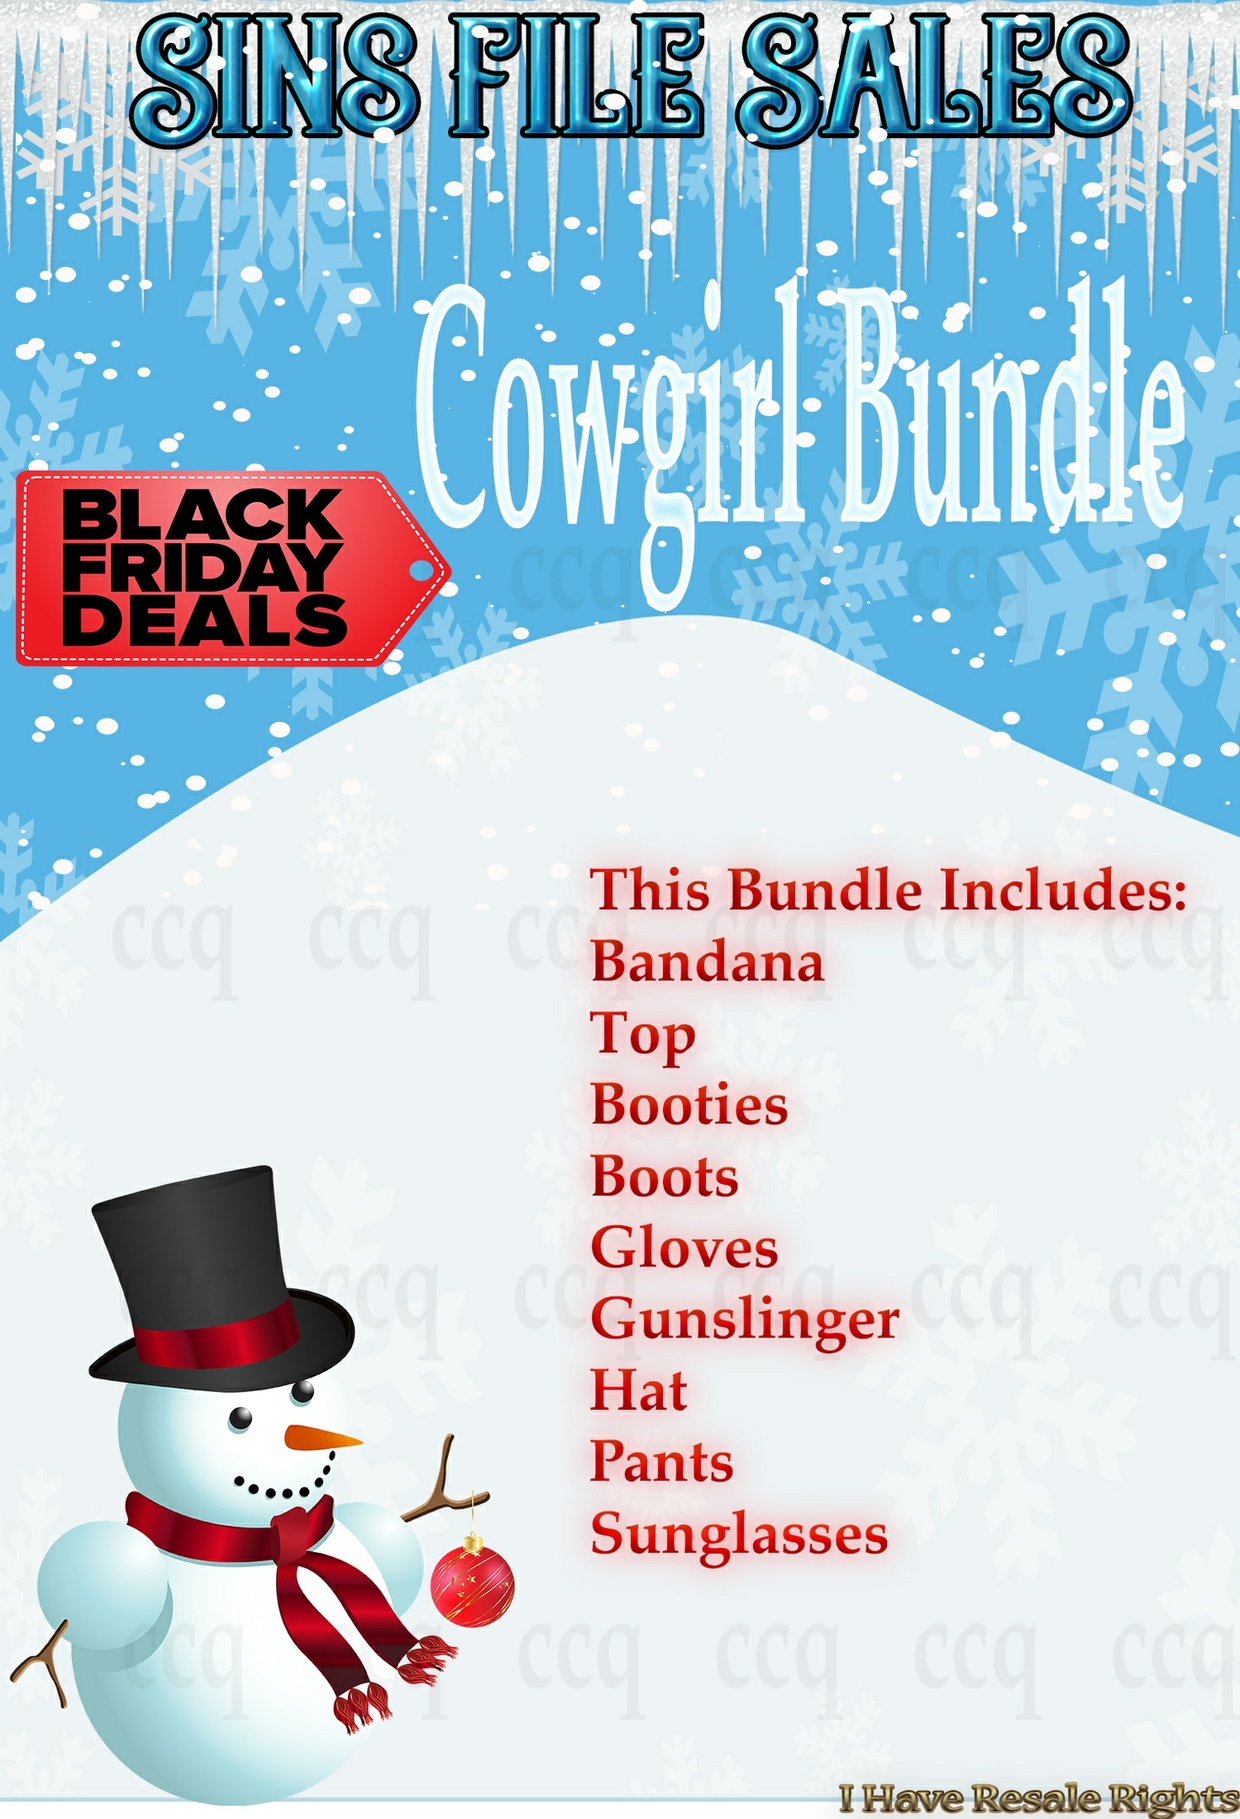 Cyber Monday Deal: Cowgirl Bundle